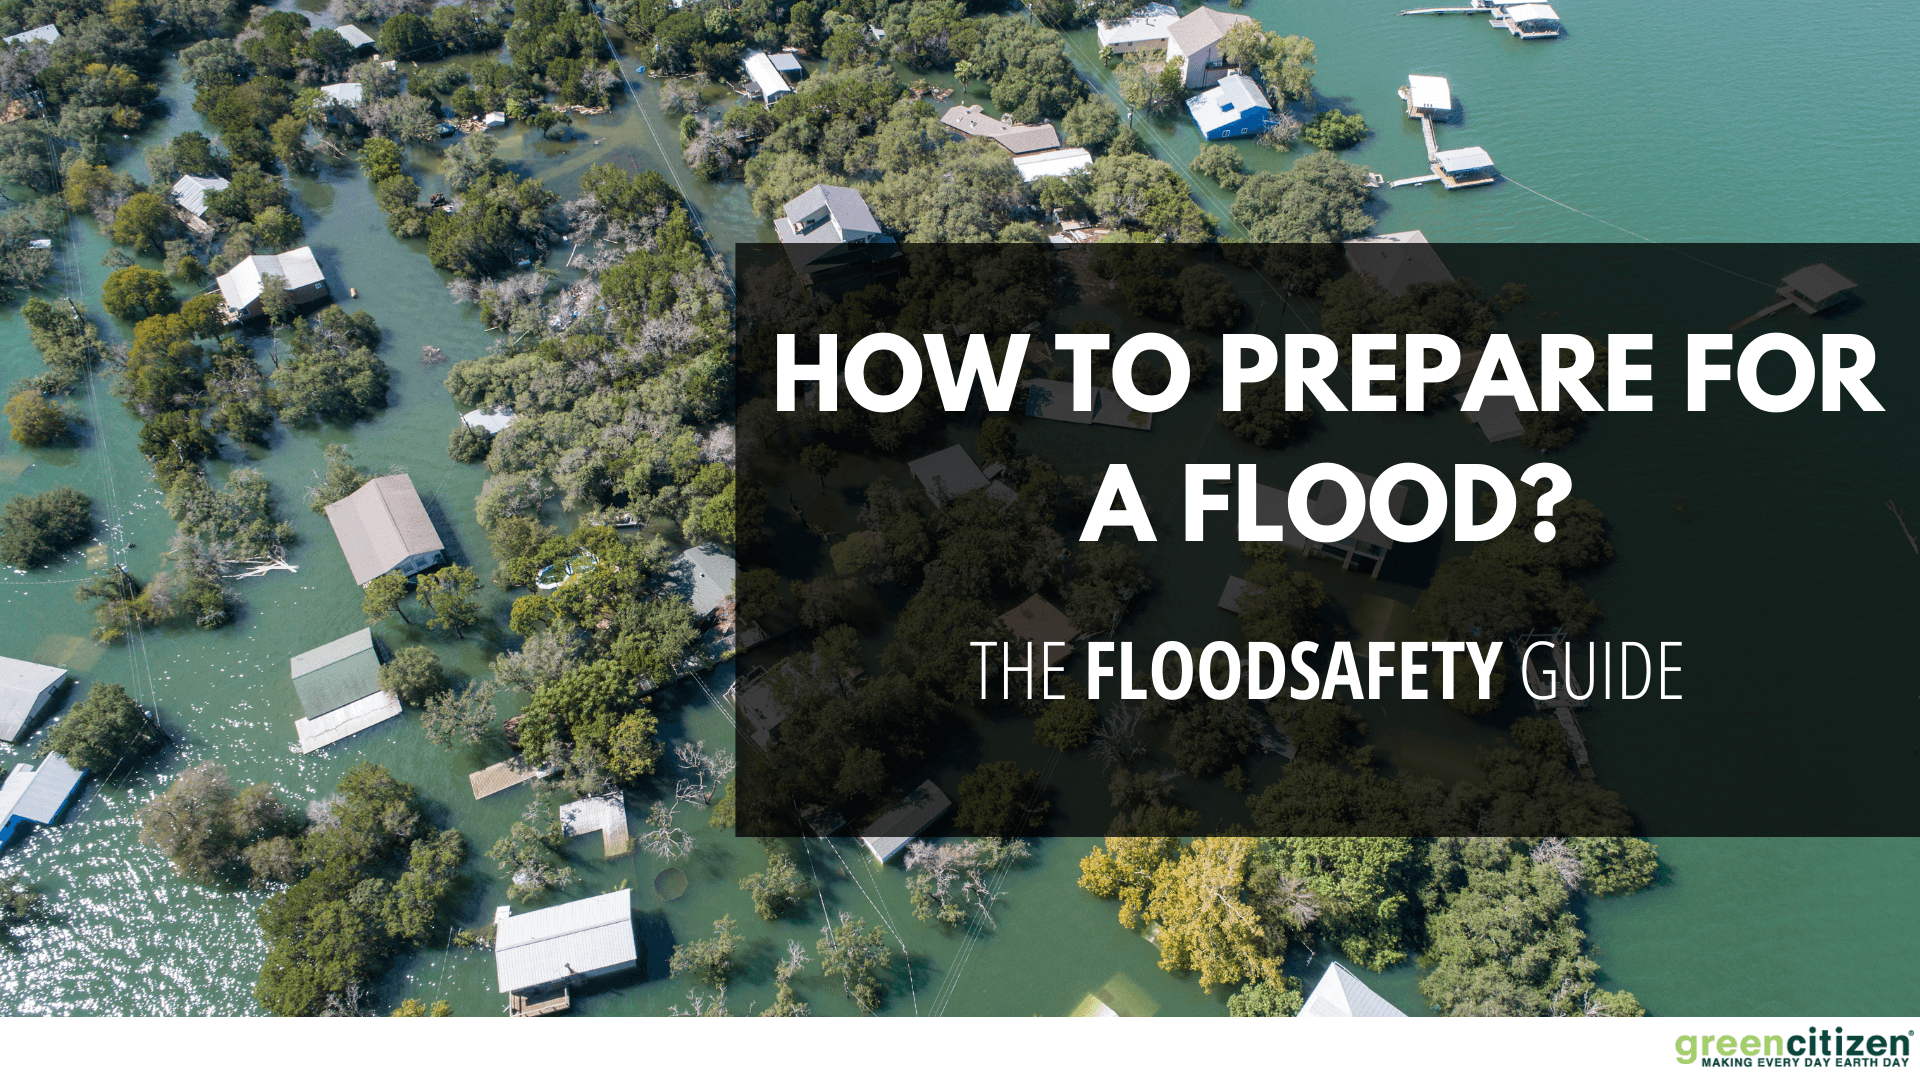 How to prepare for a flood floodsafety